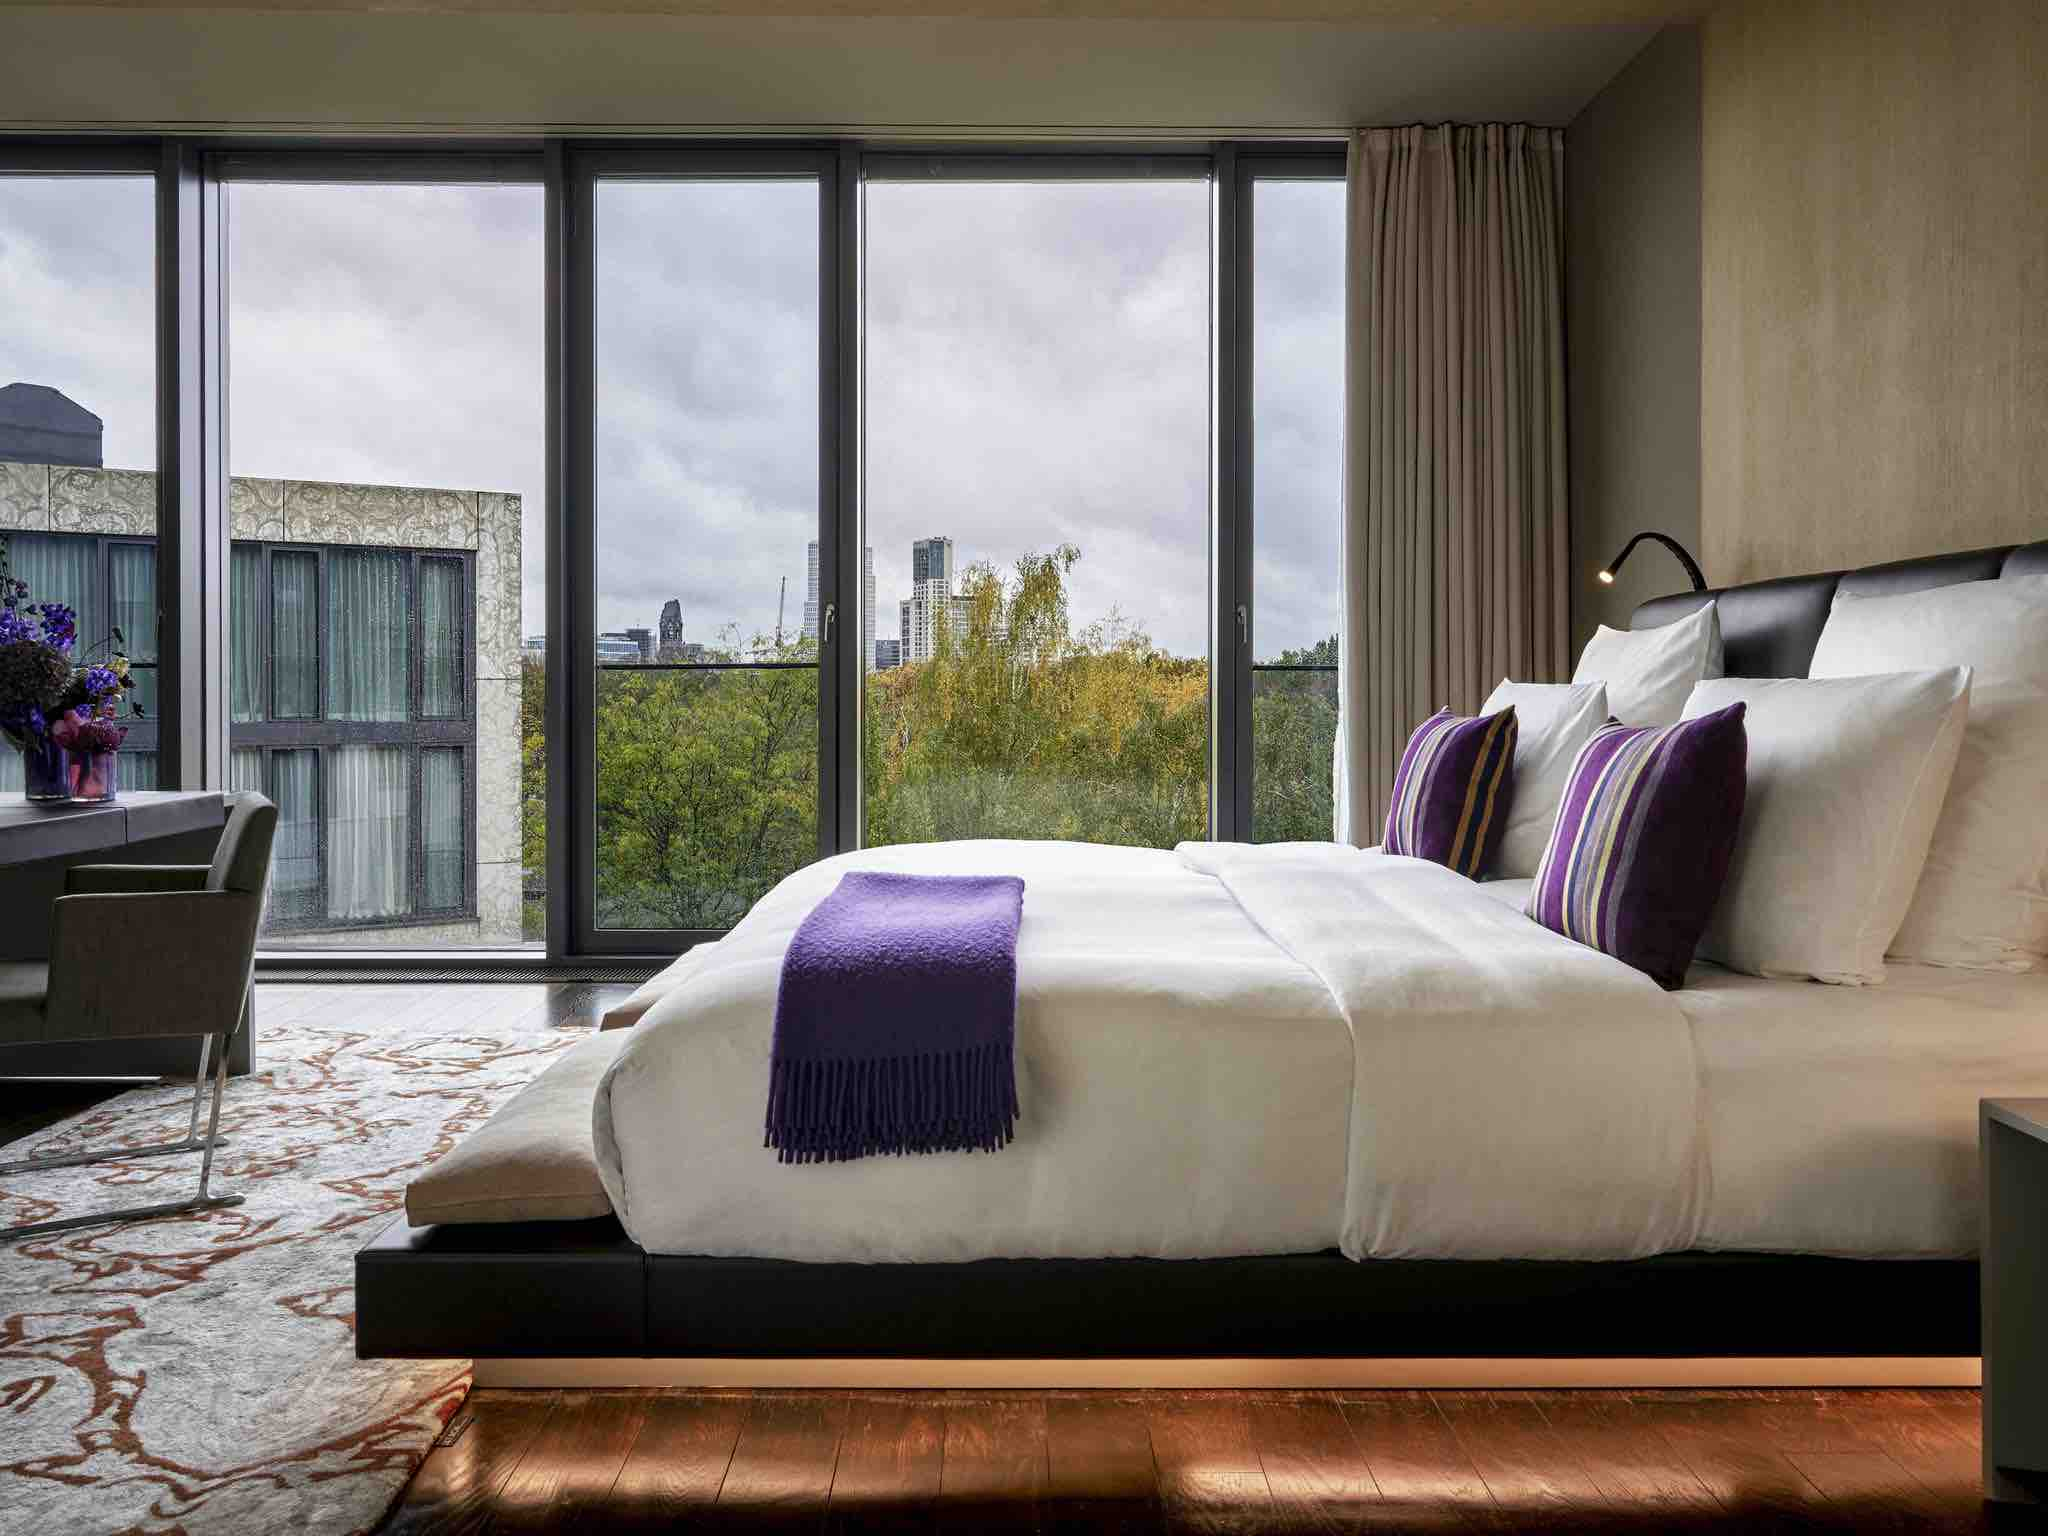 MFI-SO/Berlin Das Stue -03 - boutique hotel in Berlin bedroom with city view in jpg